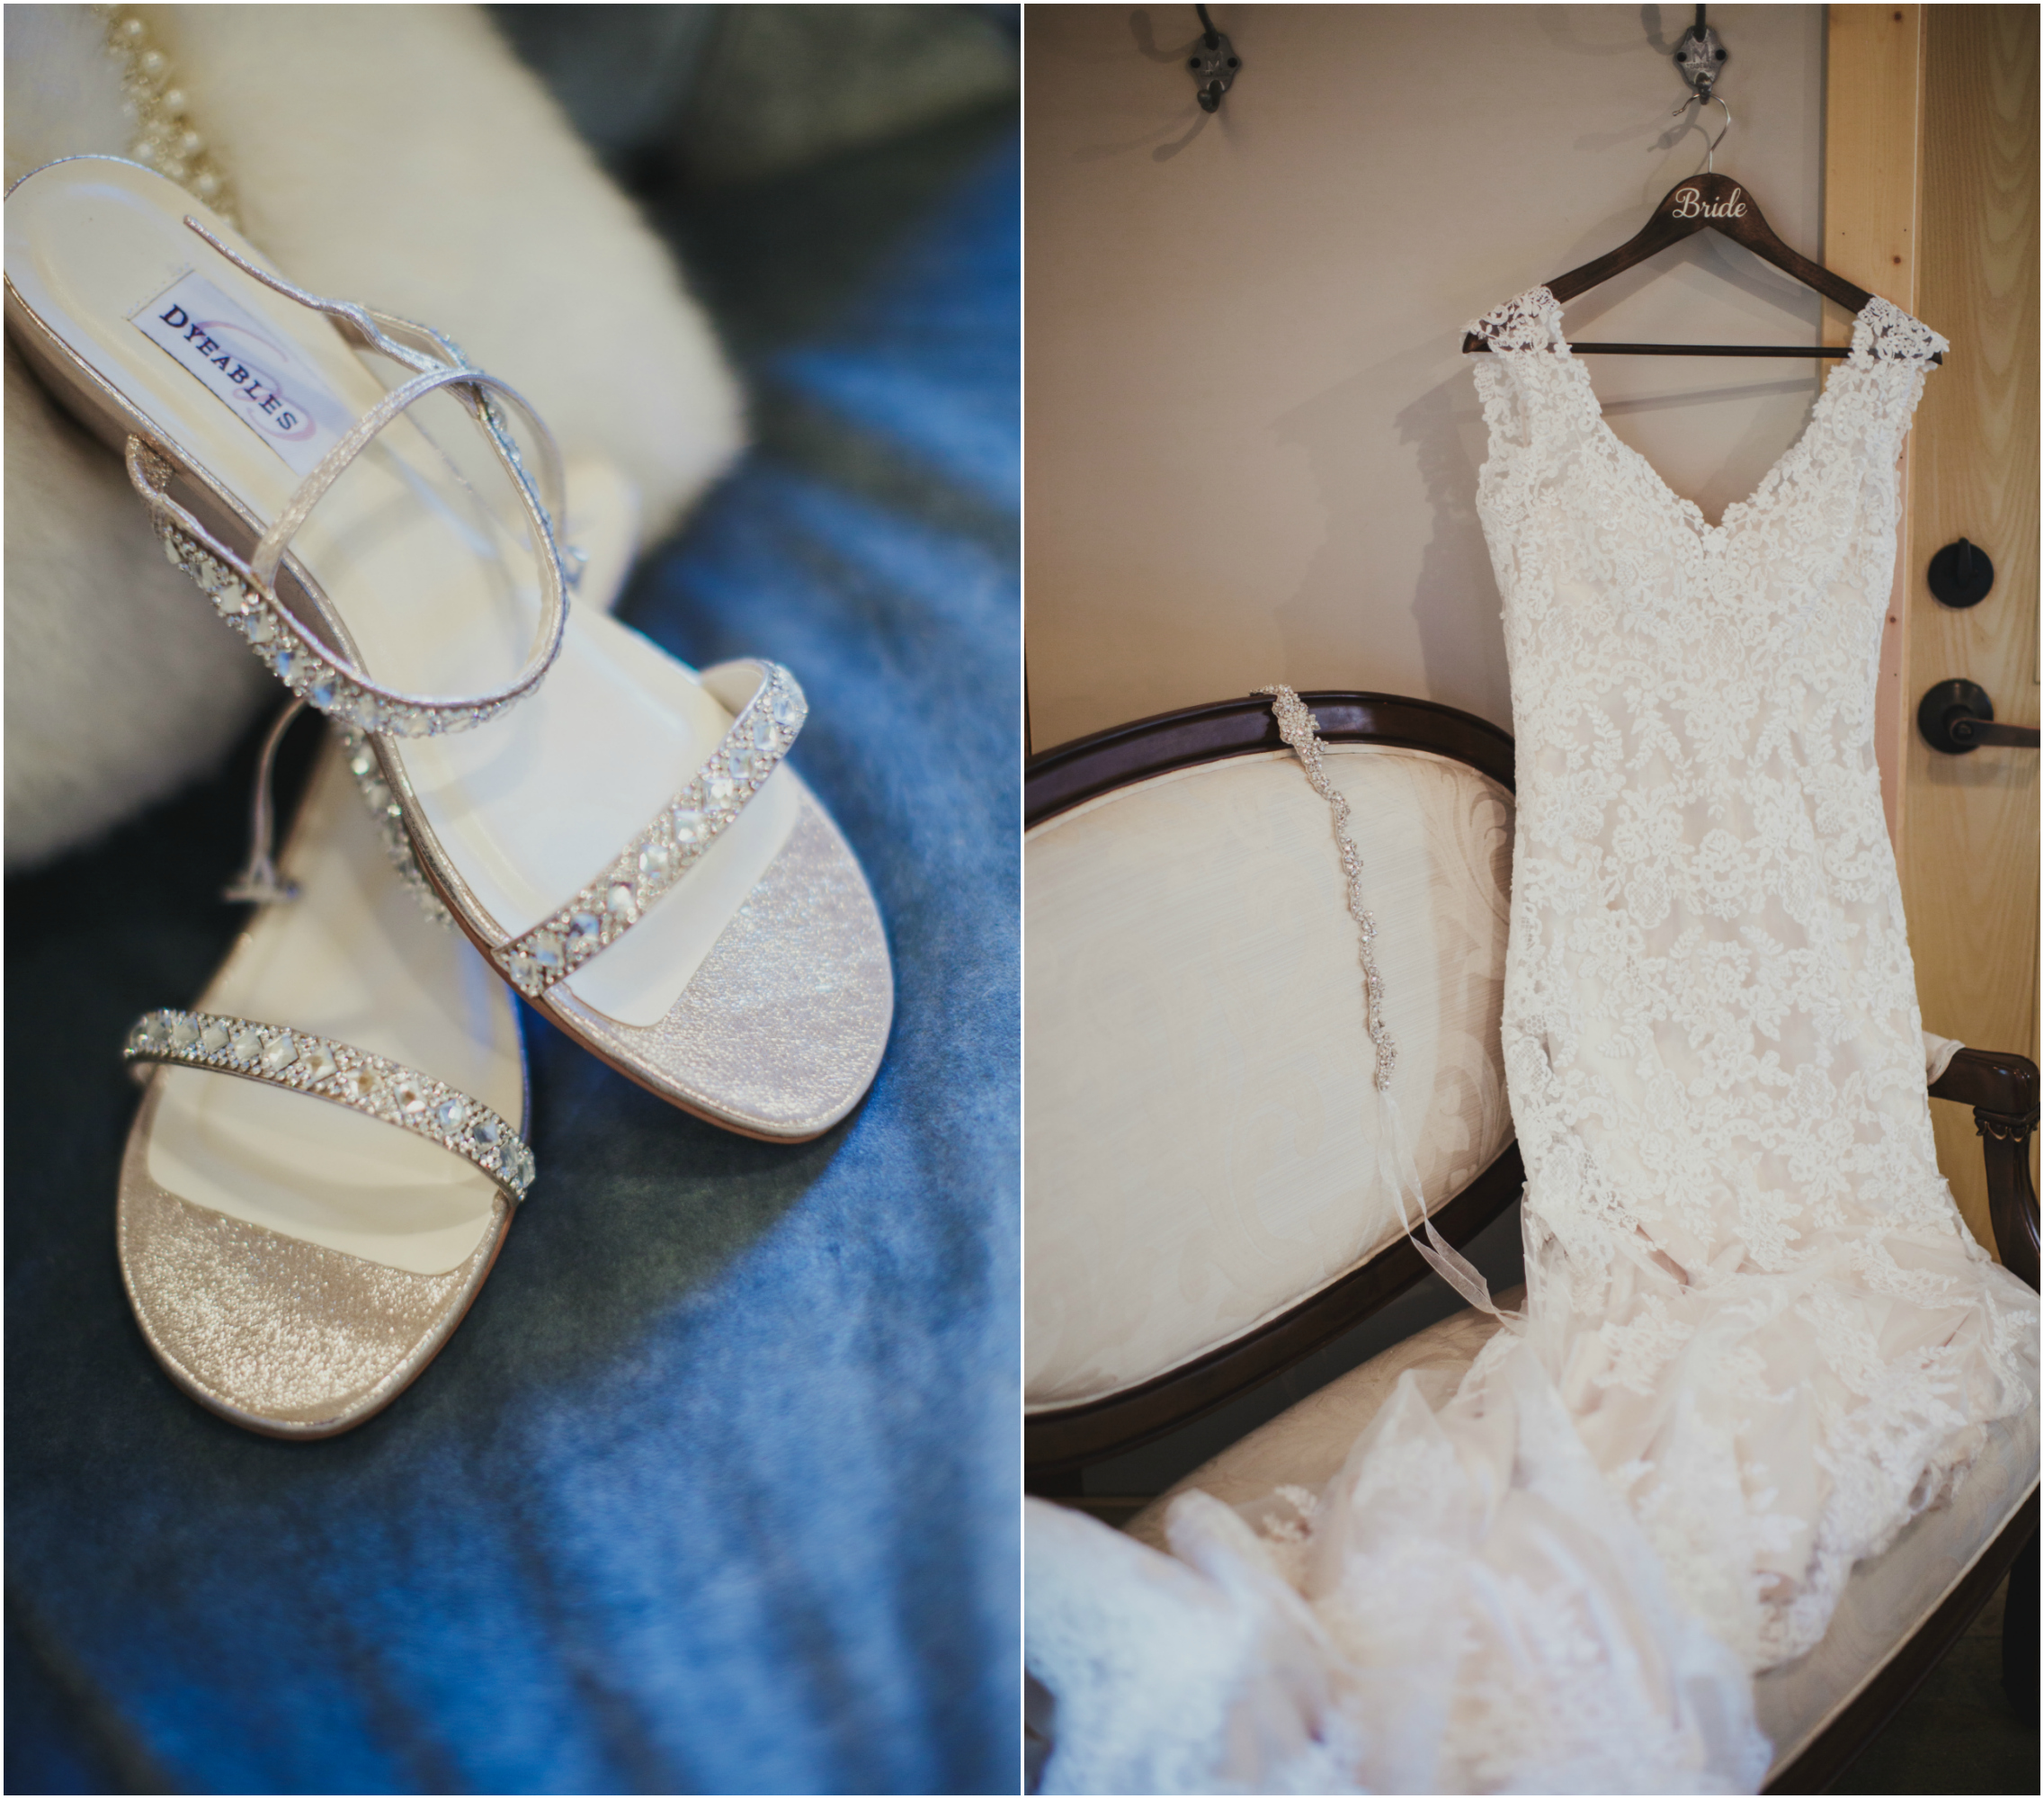 Wedding Dress and Shoes.jpg